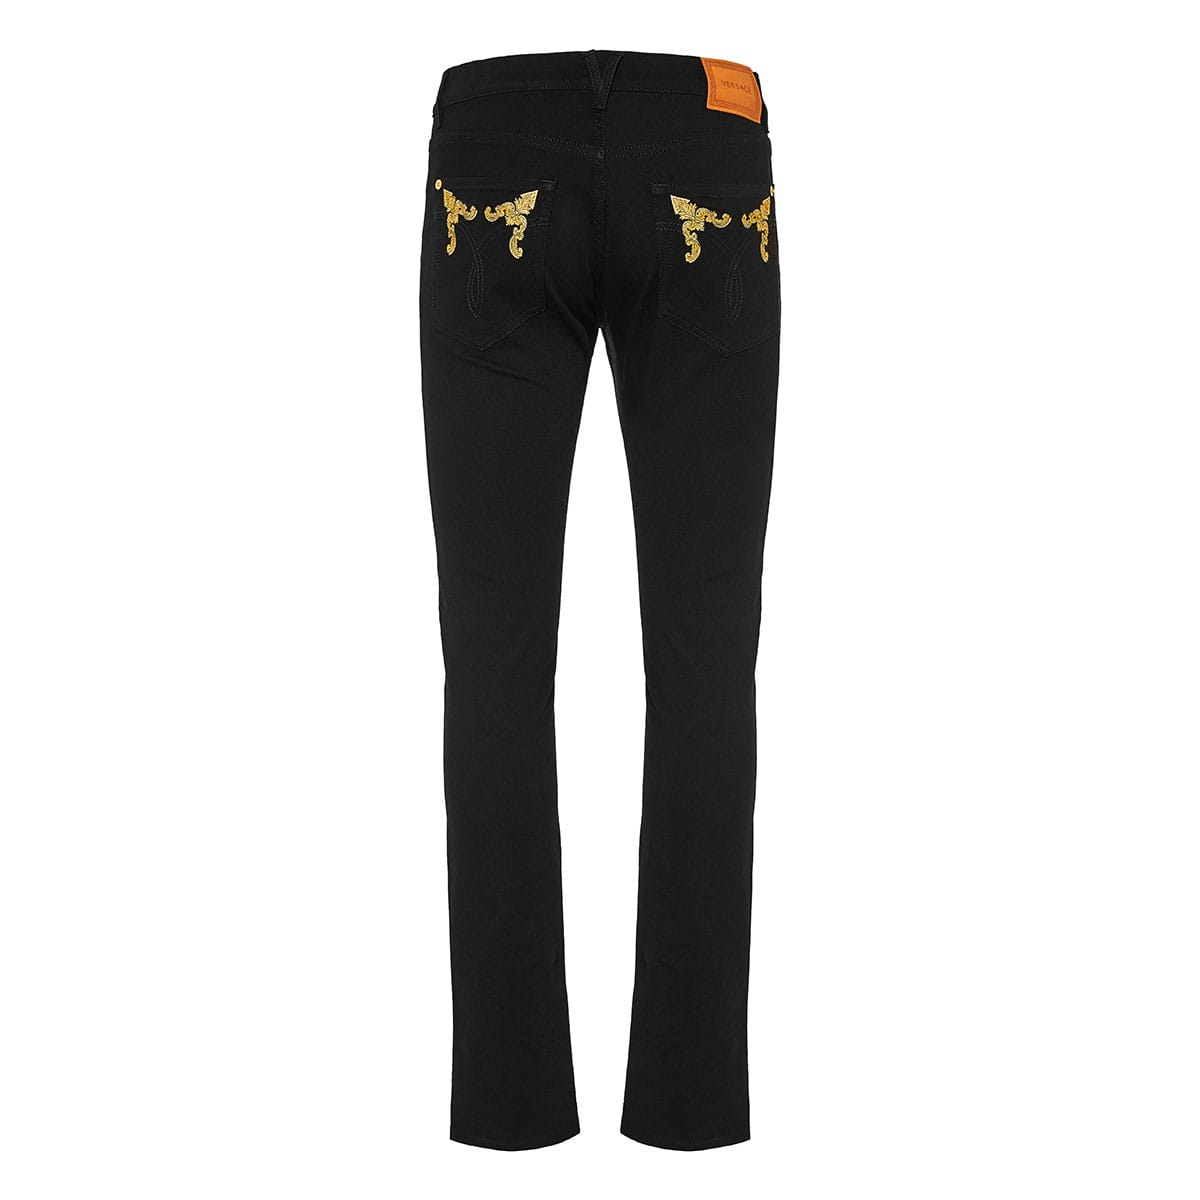 Baroque embroidered slim-fit jeans